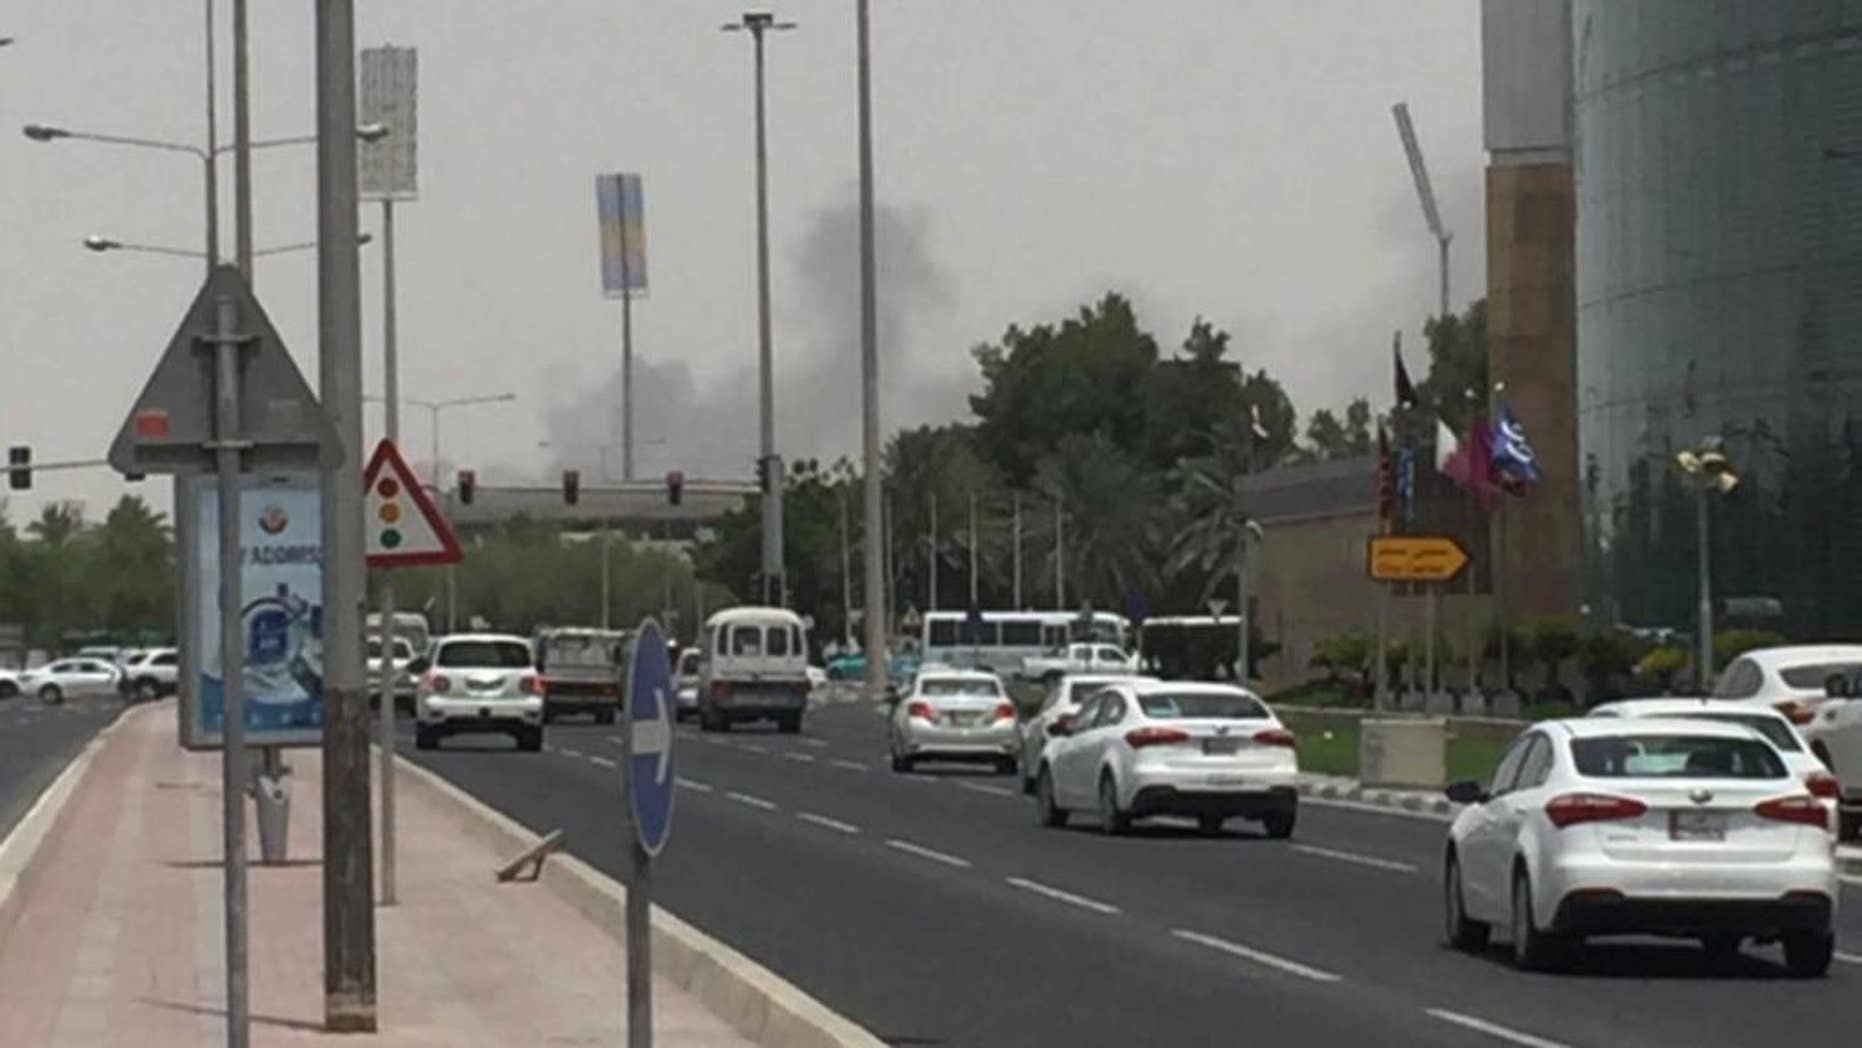 This picture posted on social media shows thick black smoke billowing from the Tawar Mall complex, Wednesday, July 20, 2016. Authorities say a fire has broken out at a shopping mall under construction in the country's capital, the second such blaze in the 2020 World Cup host nation in less than four months. The Ministry of Interior said firefighters had contained the fire near the Dahl al-Hamam park. No casualties were reported. (Haris Aghadi Twitter via AP)